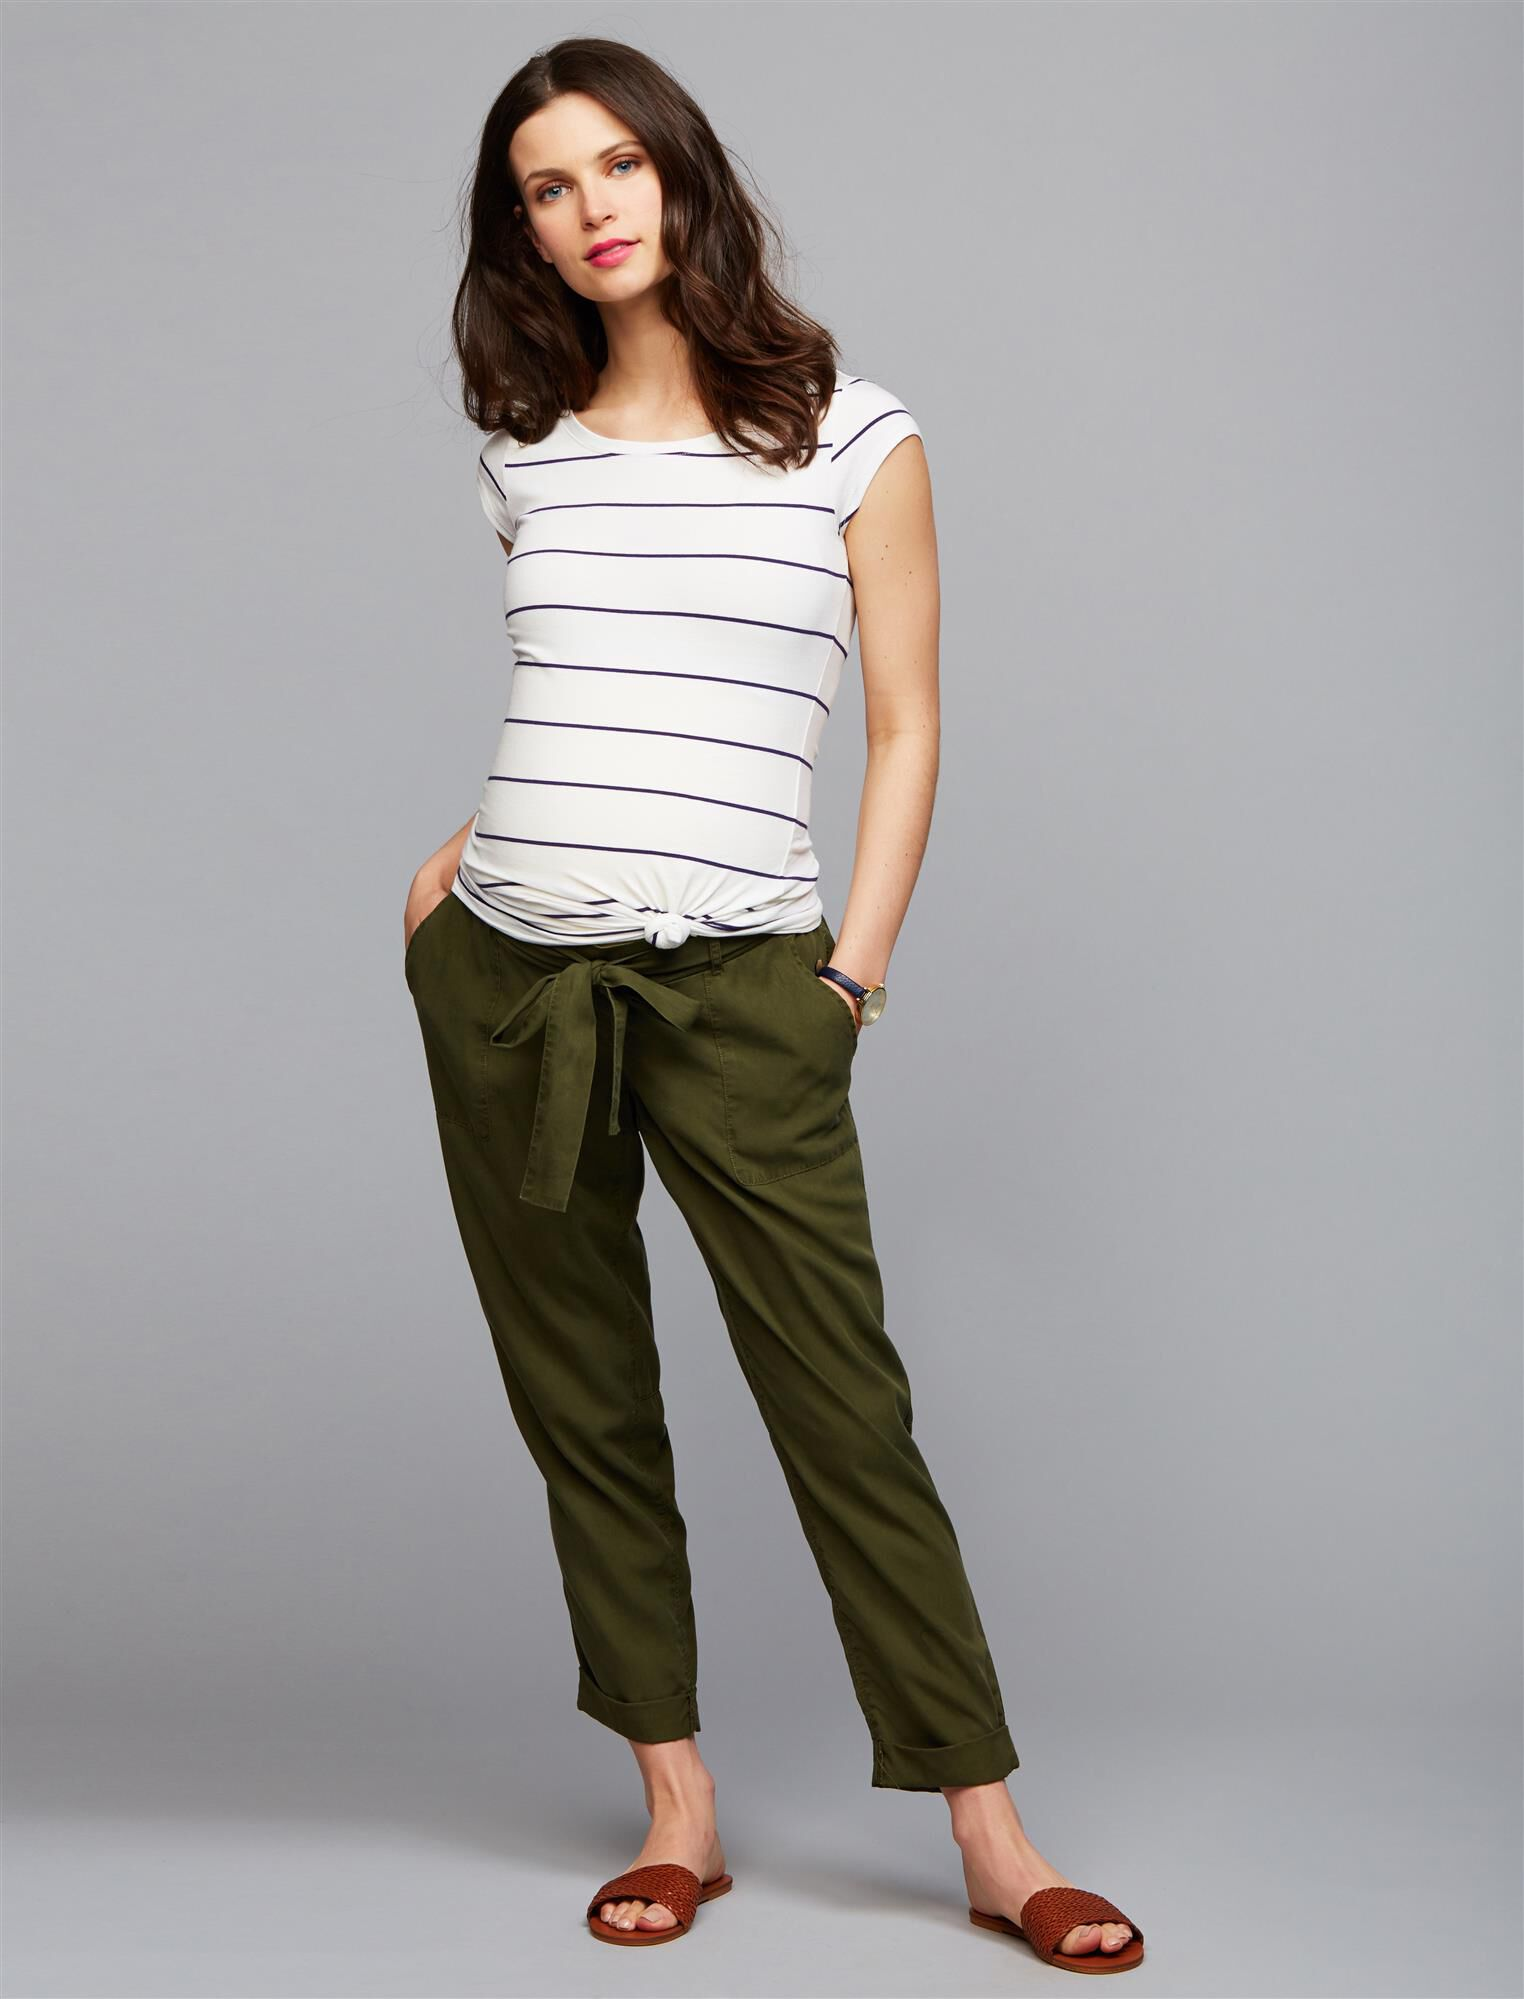 Under Belly Skinny Leg Maternity Crop Pants